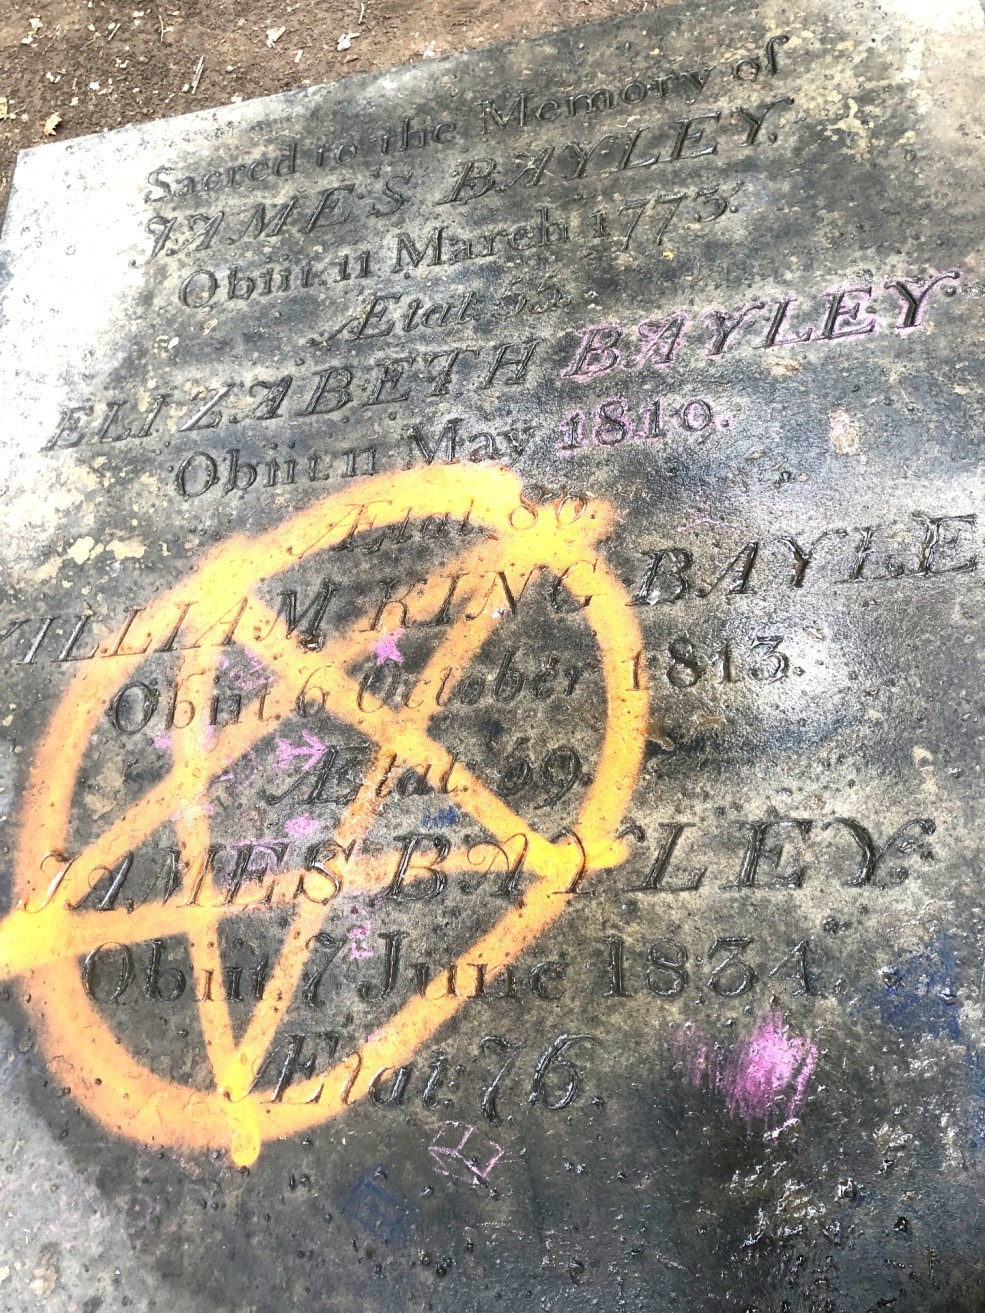 the pentagram that marks the vault James Bayley was buried in